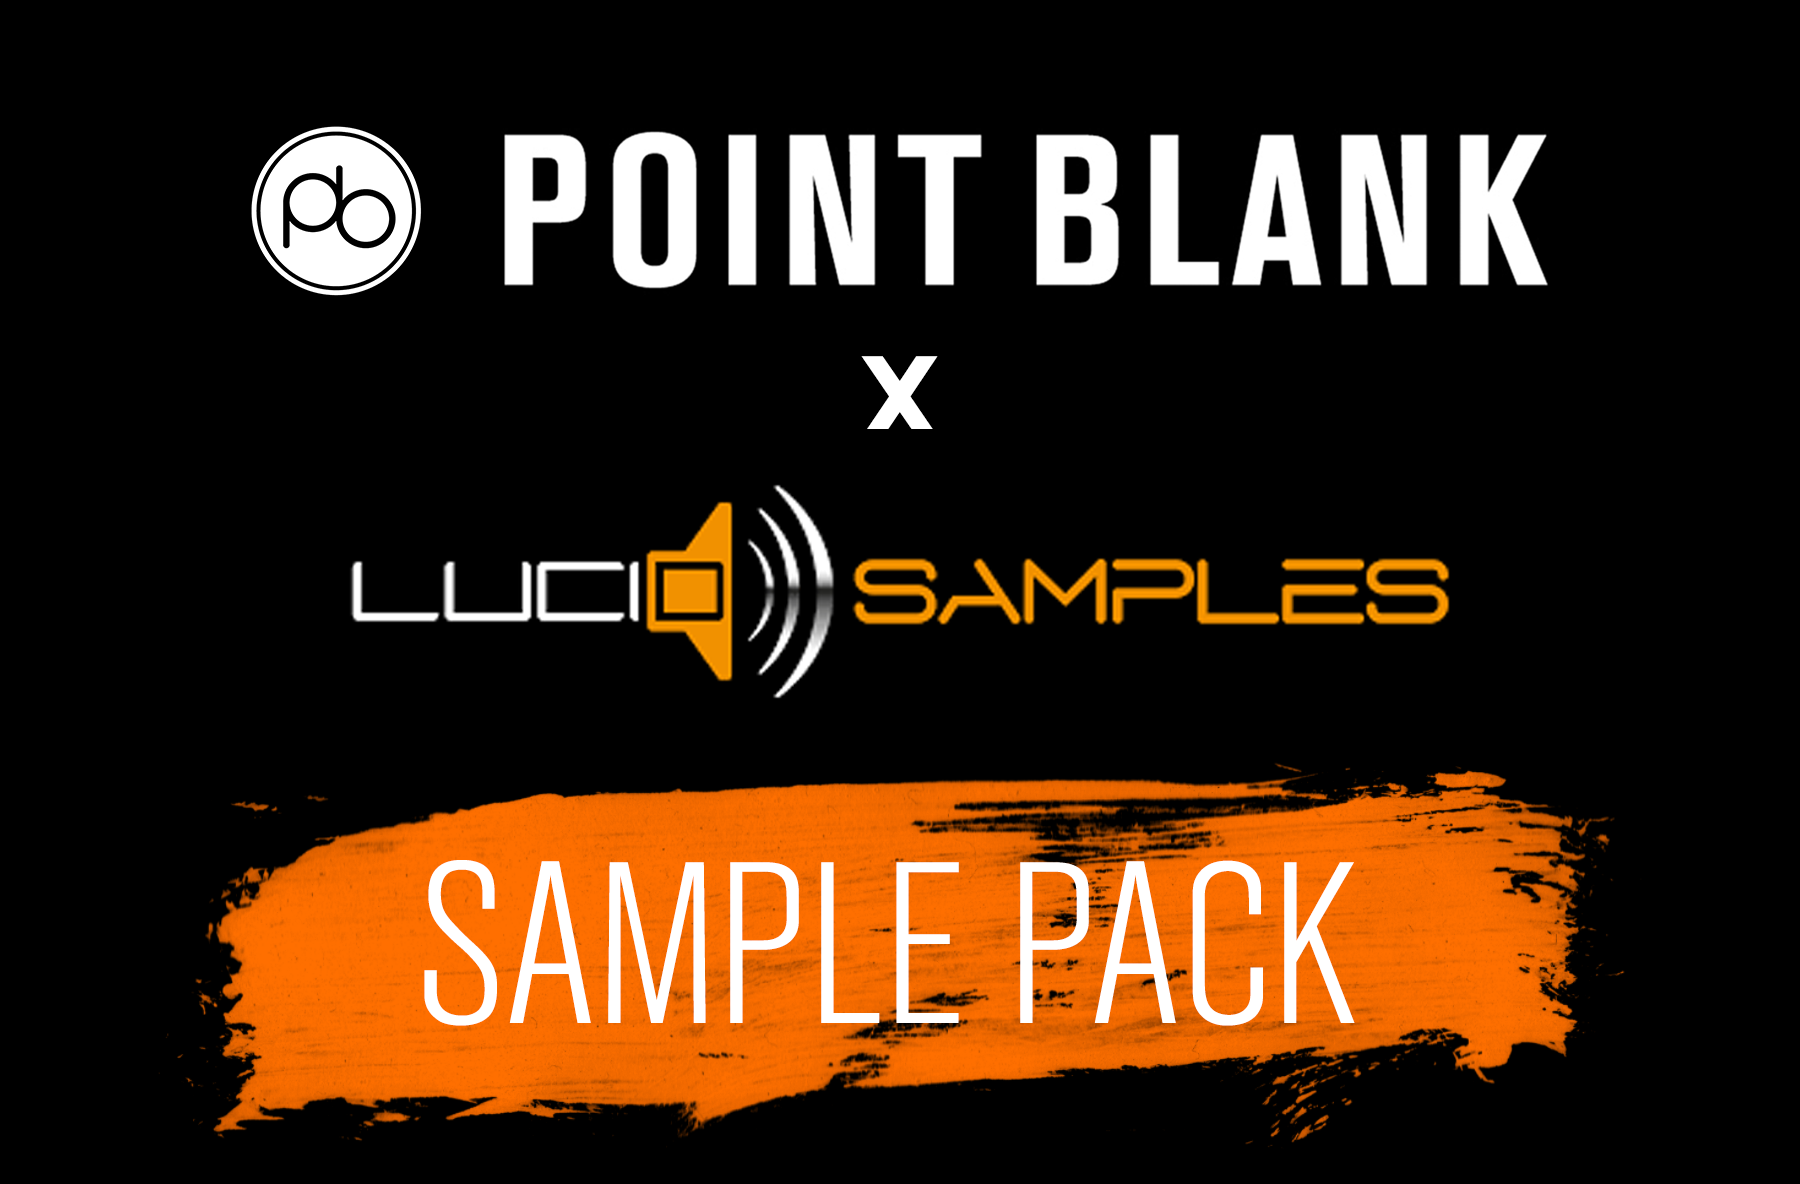 Download 5 Sample Packs for Free